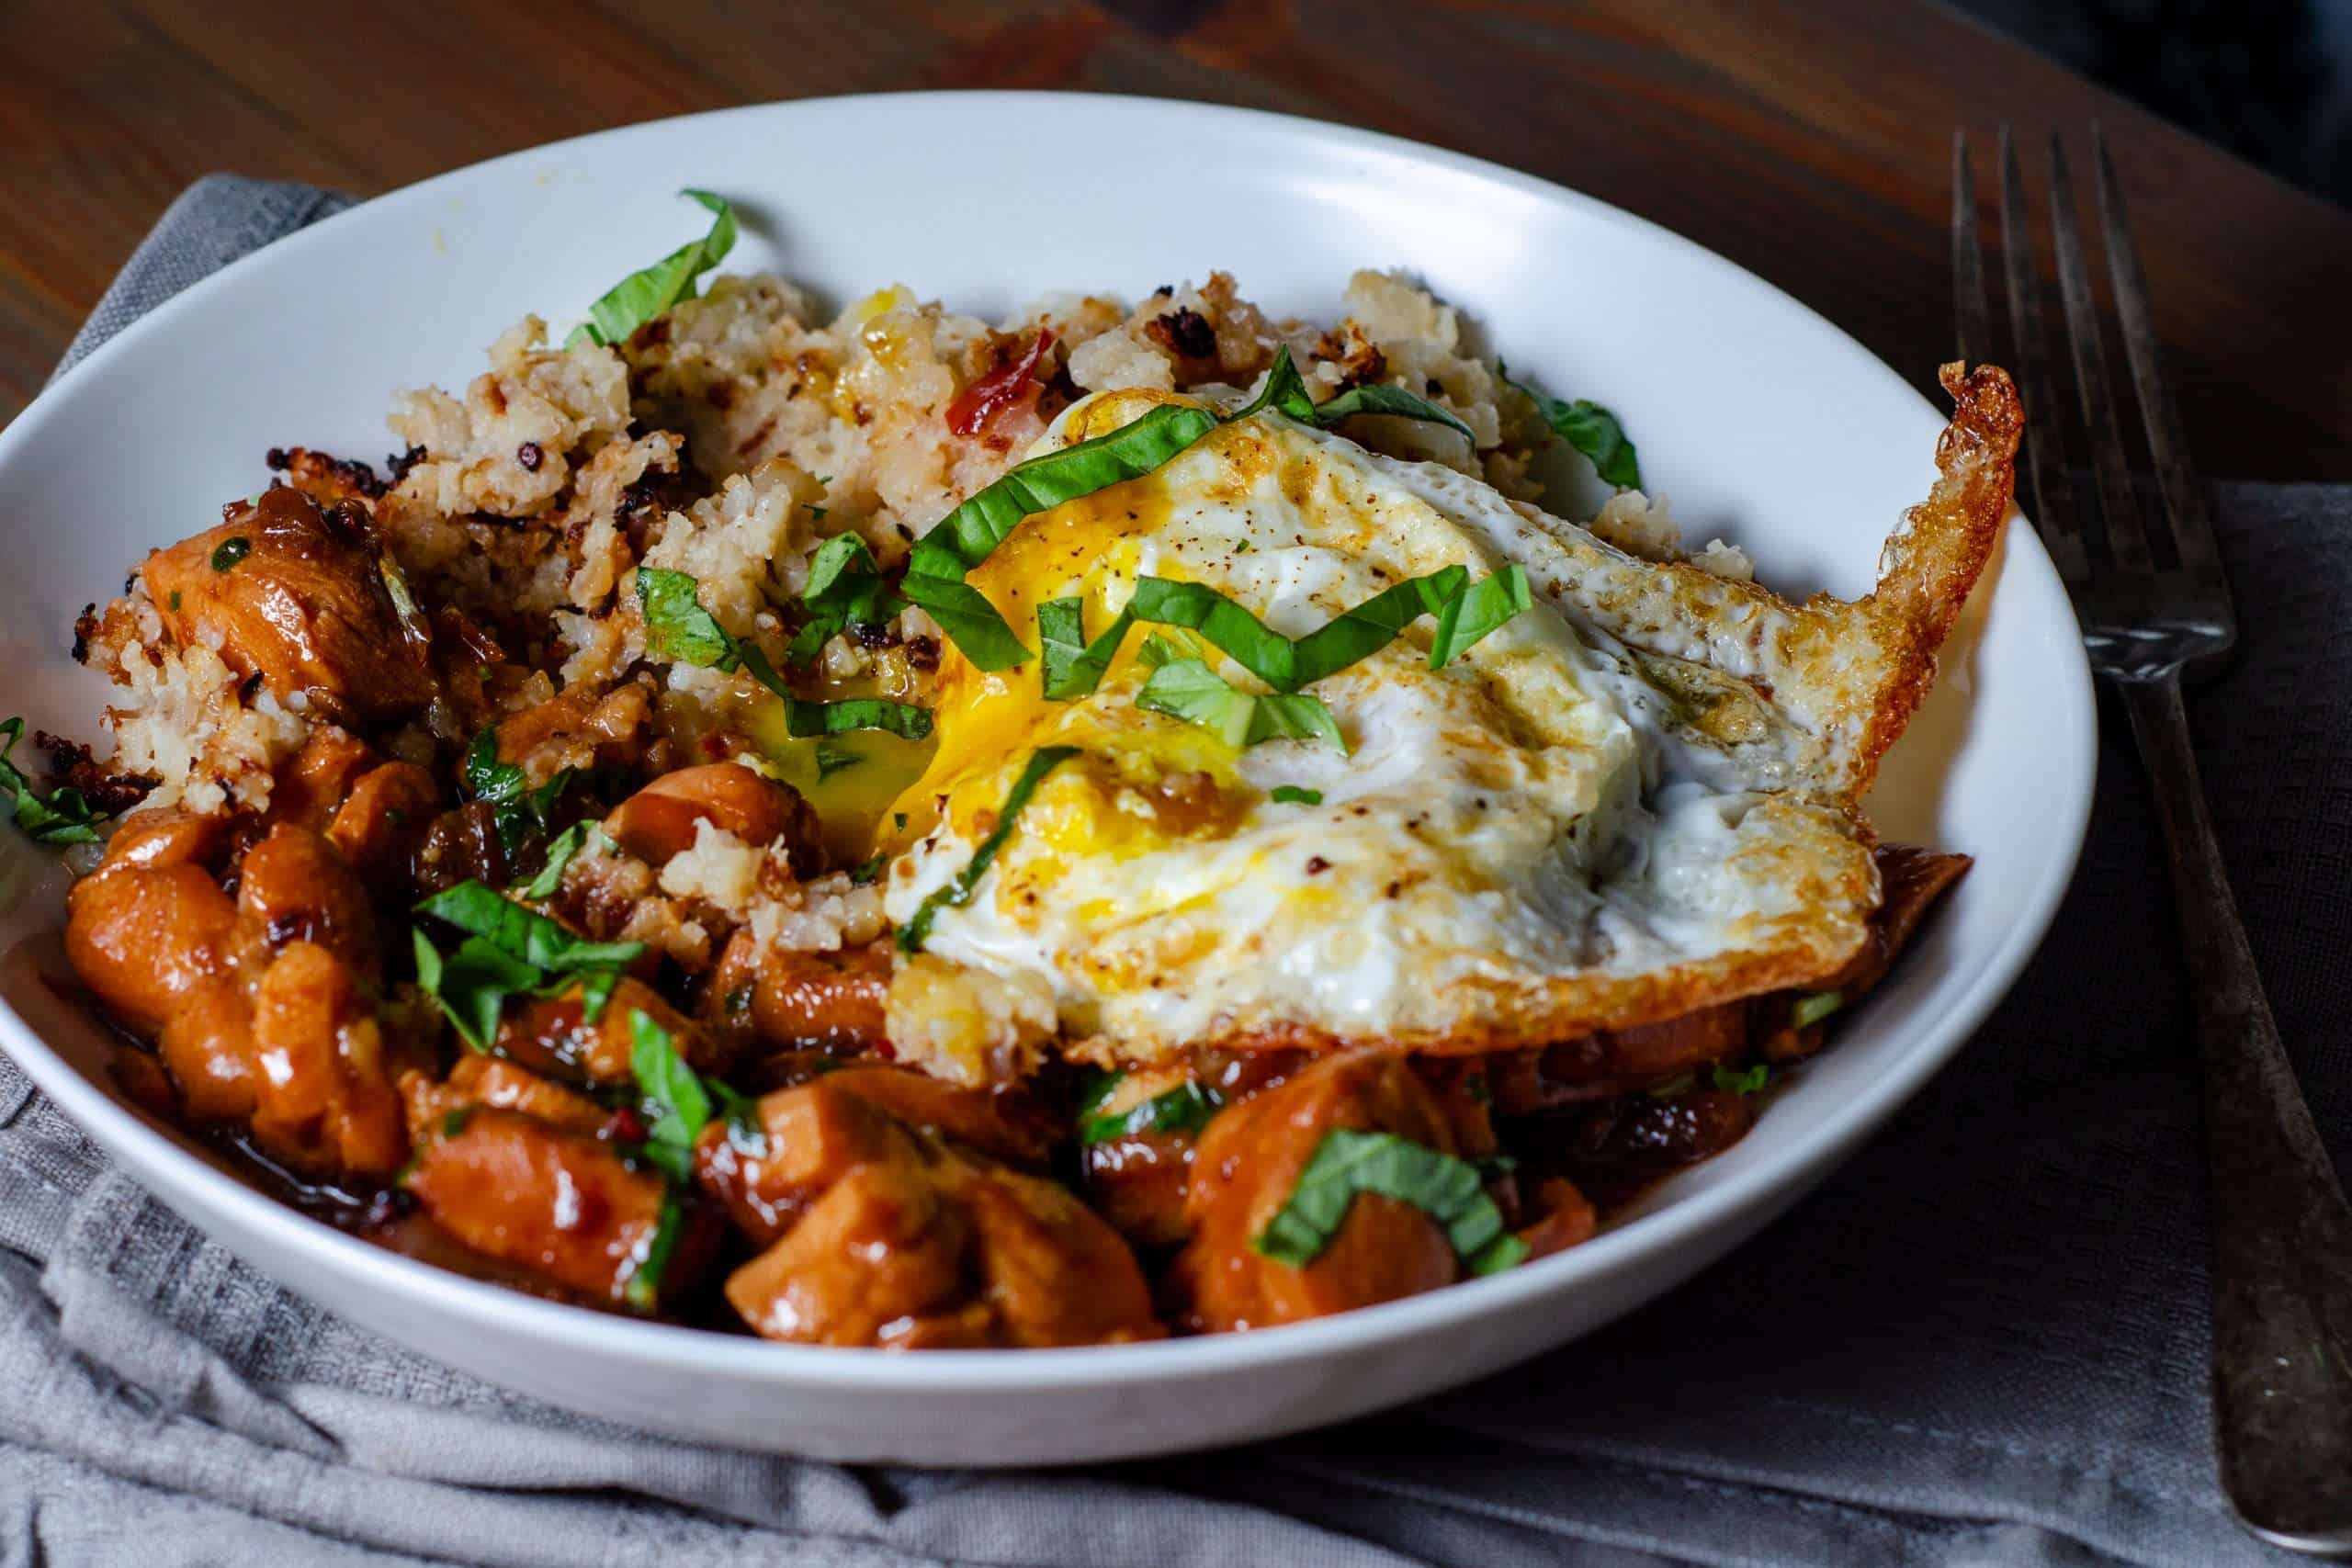 Thai Basile Chicken topped with a crispy fried egg